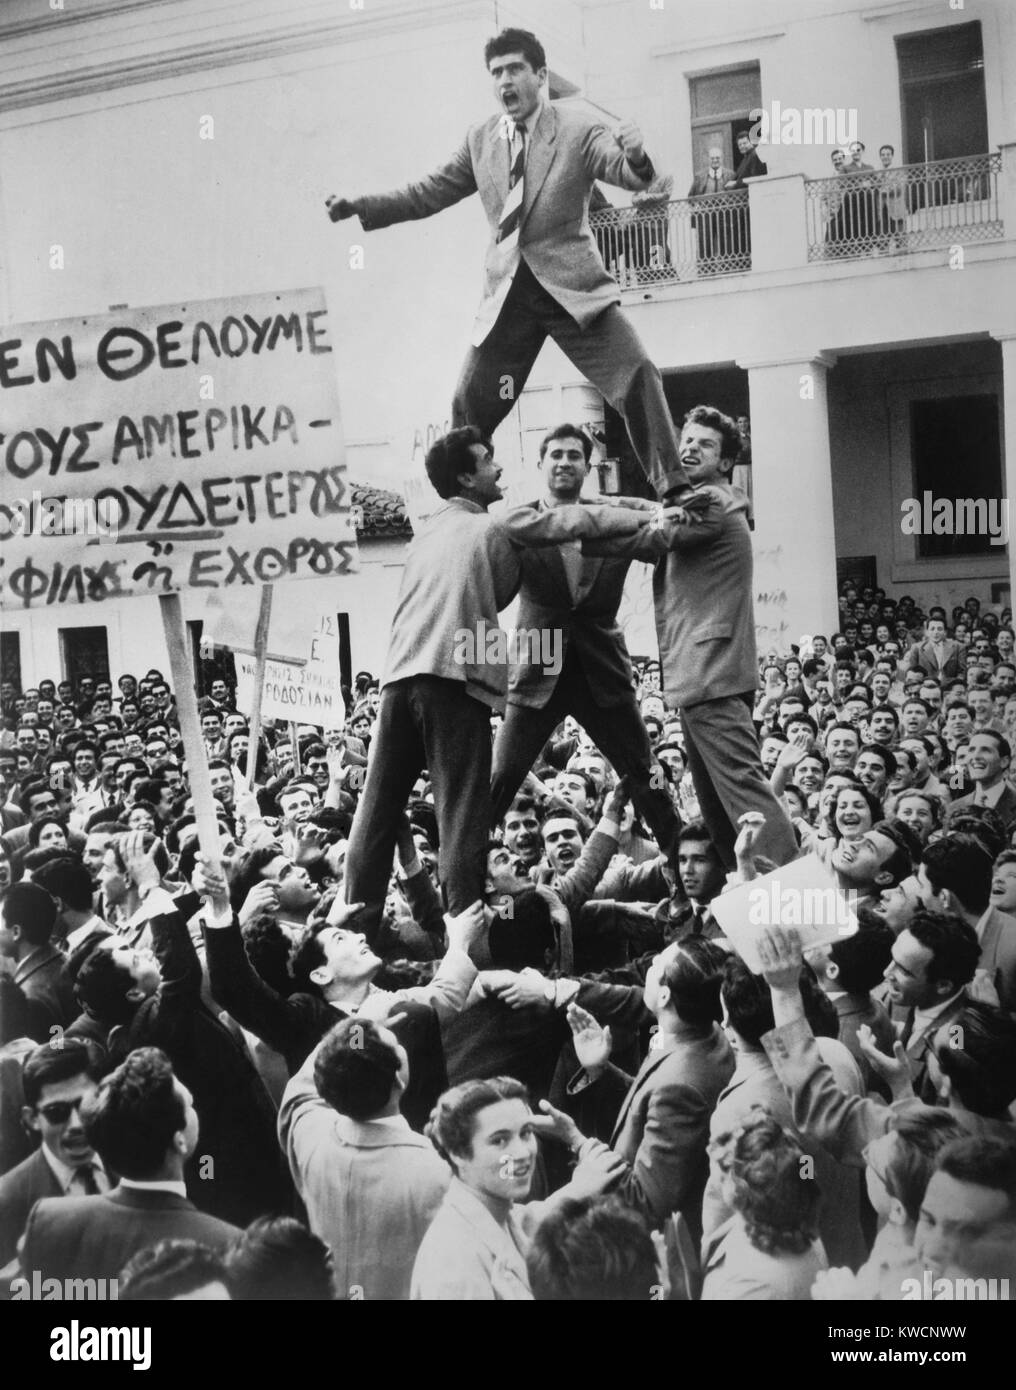 Greek students protest against British occupation of Cyprus. 4,000 students assembled in Athens watch young men - Stock Image